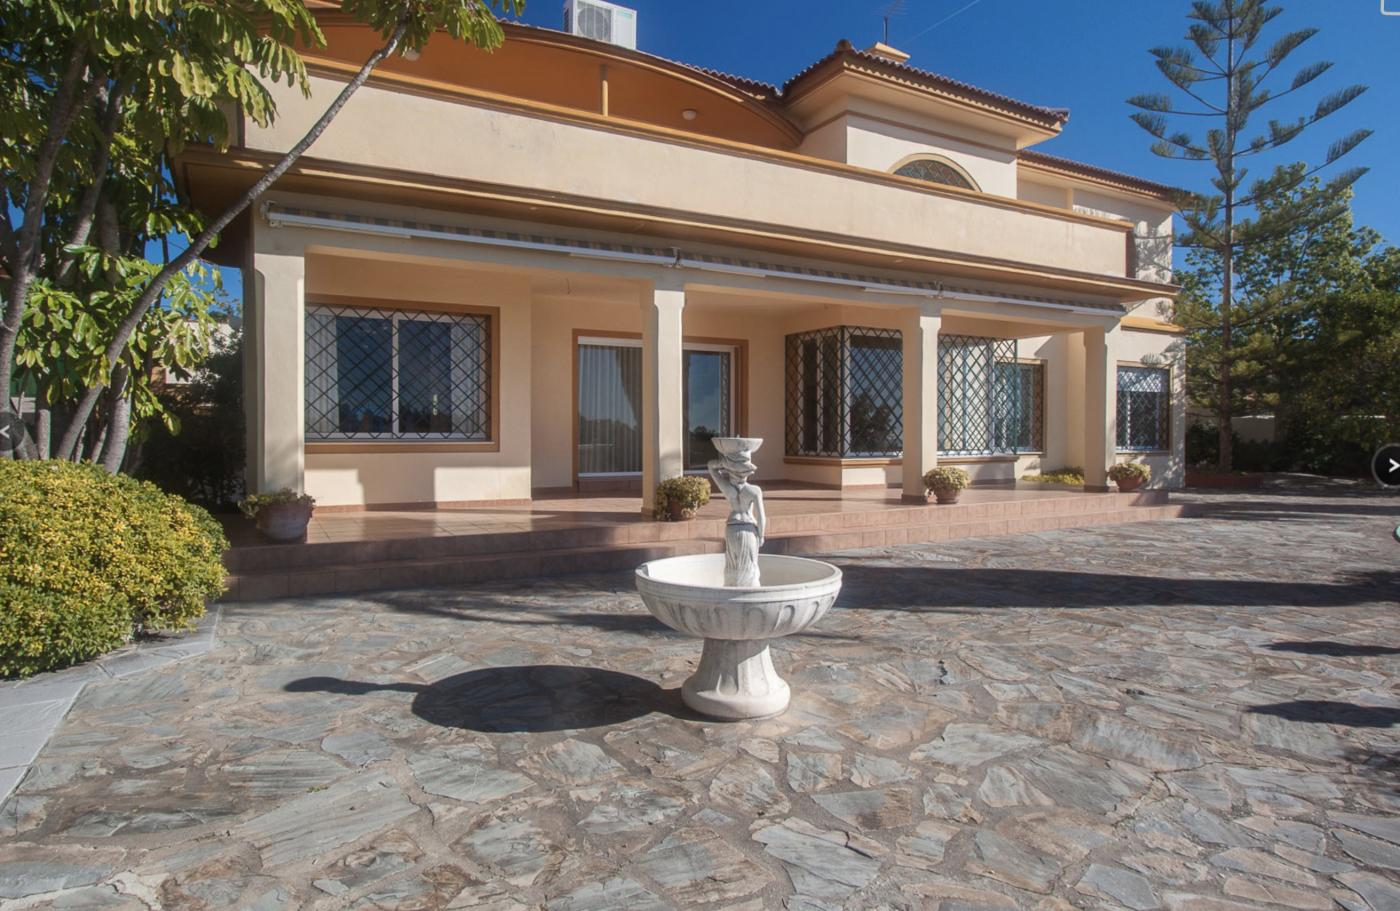 3 Bedroom Villa for Sale in Estepona